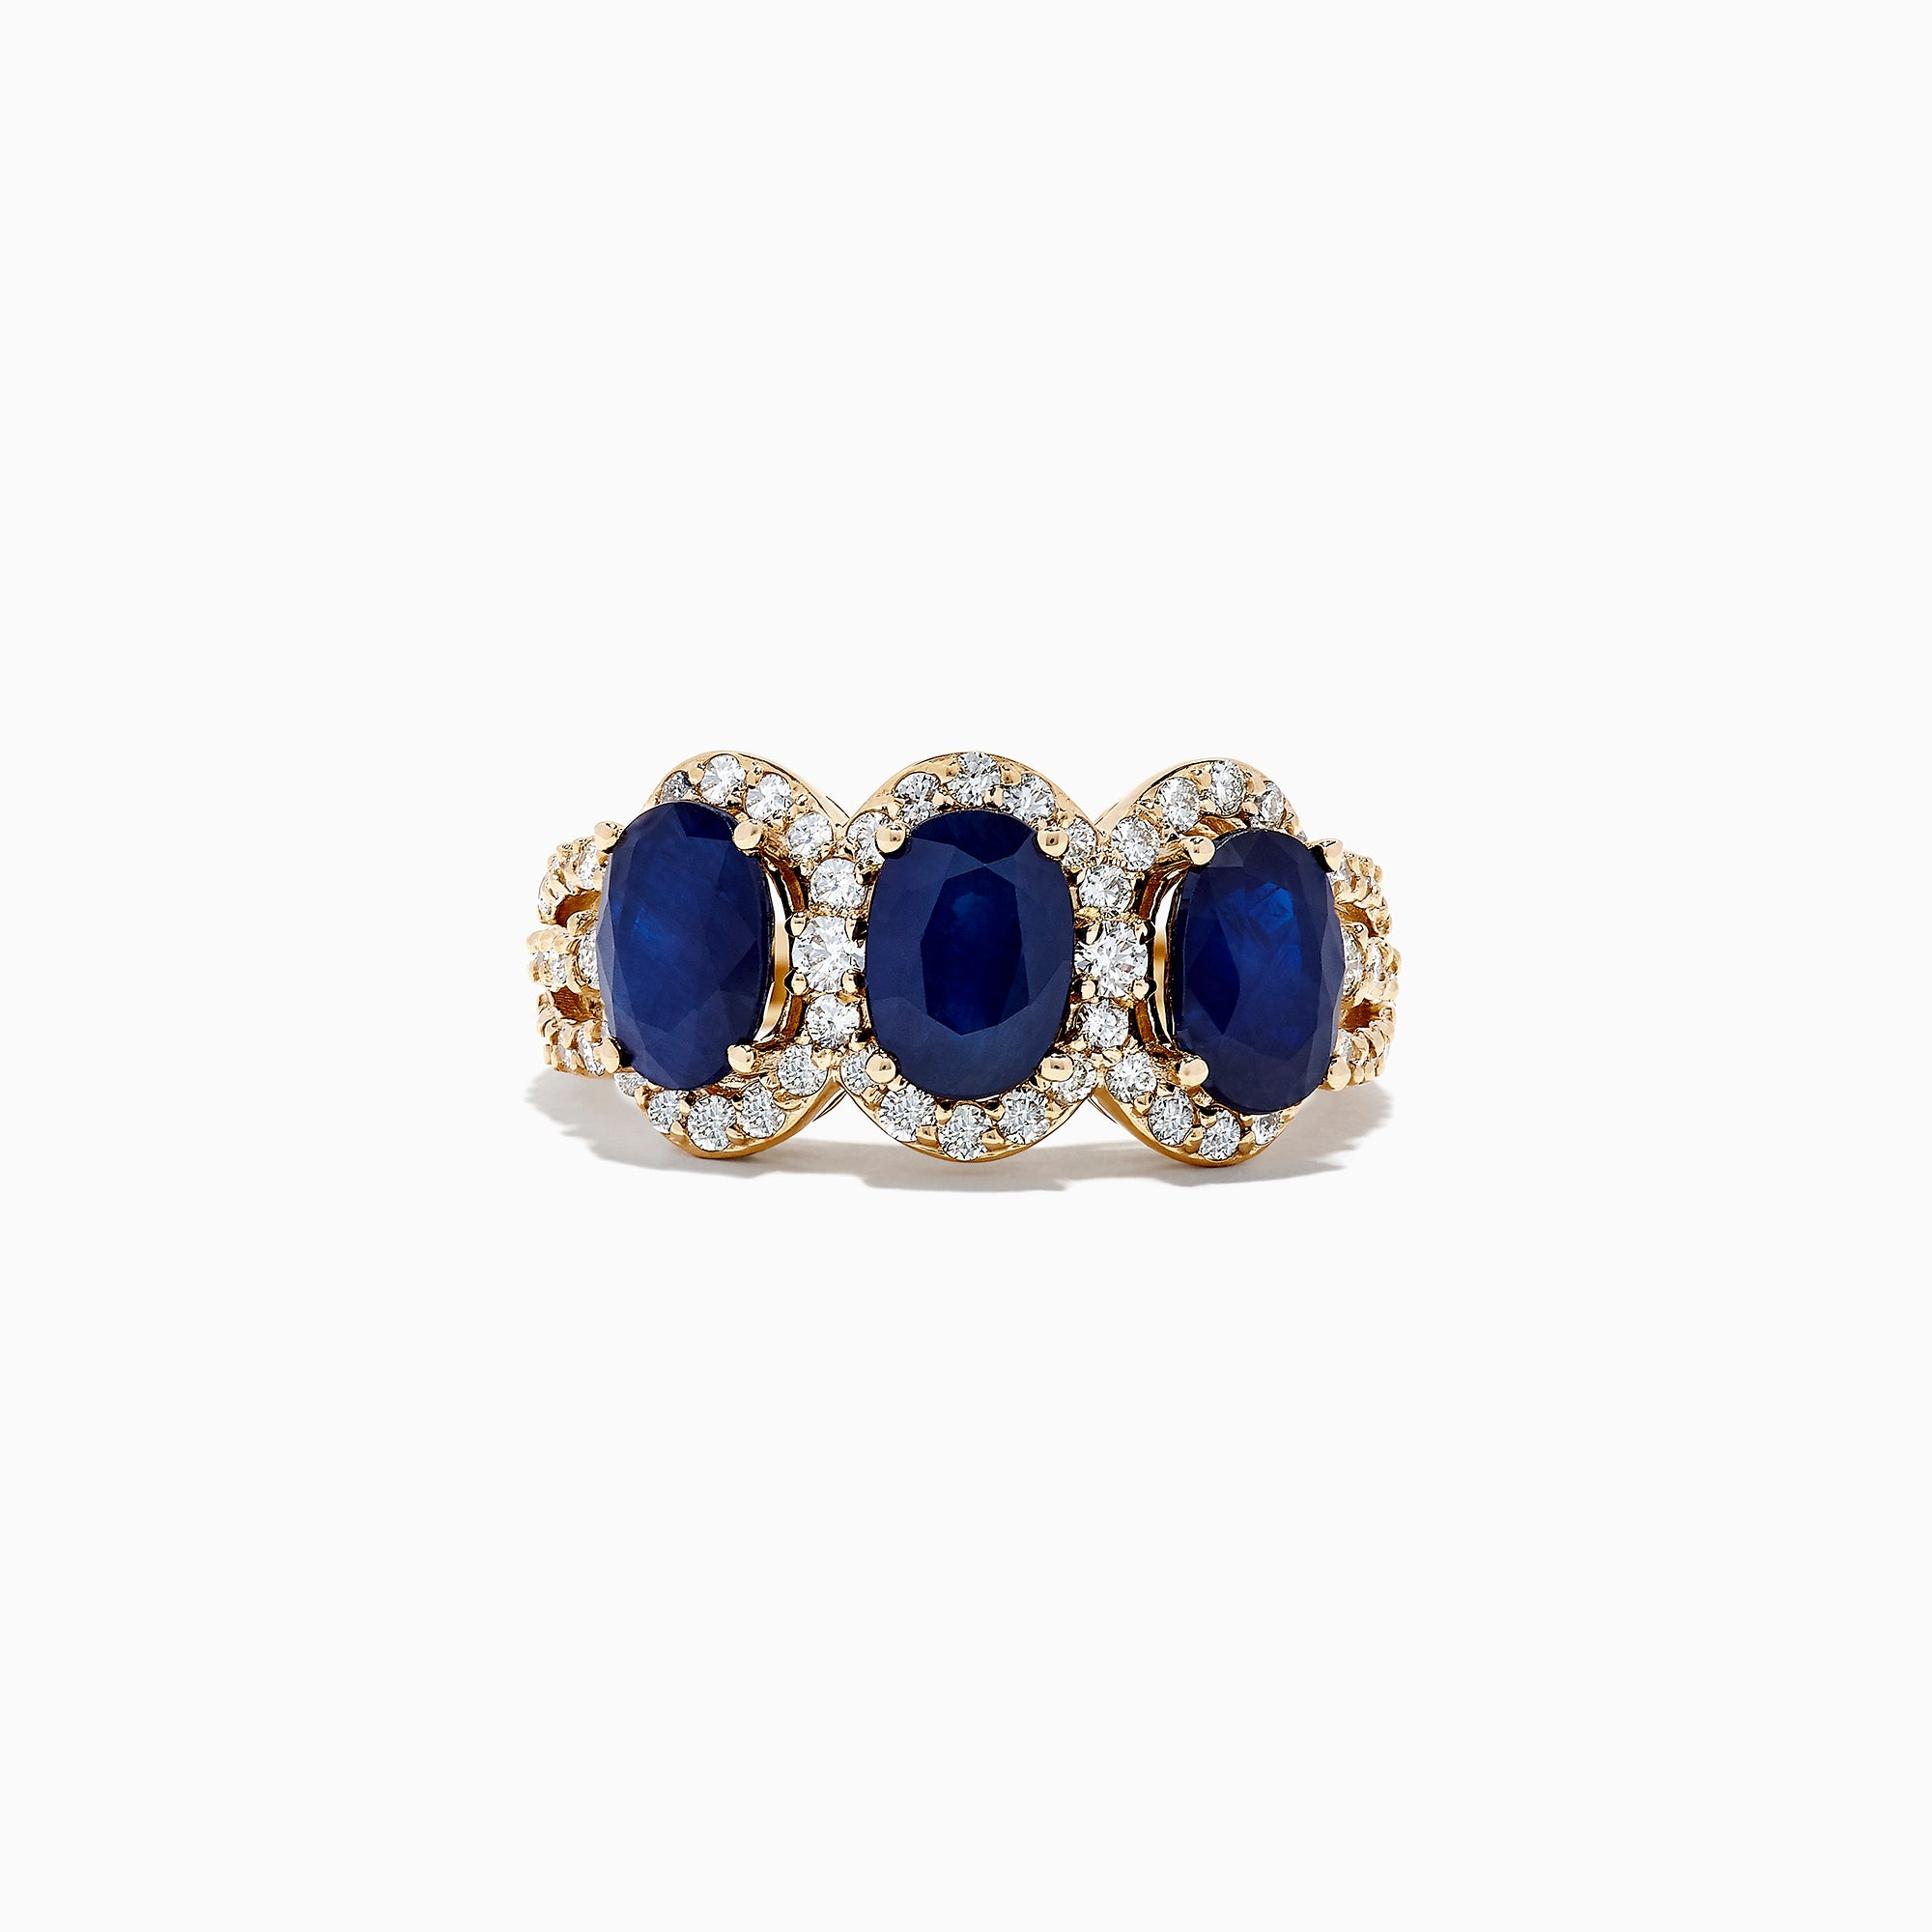 Effy Royale Bleu 14K Yellow Gold Sapphire and Diamond Ring, 3.07 TCW